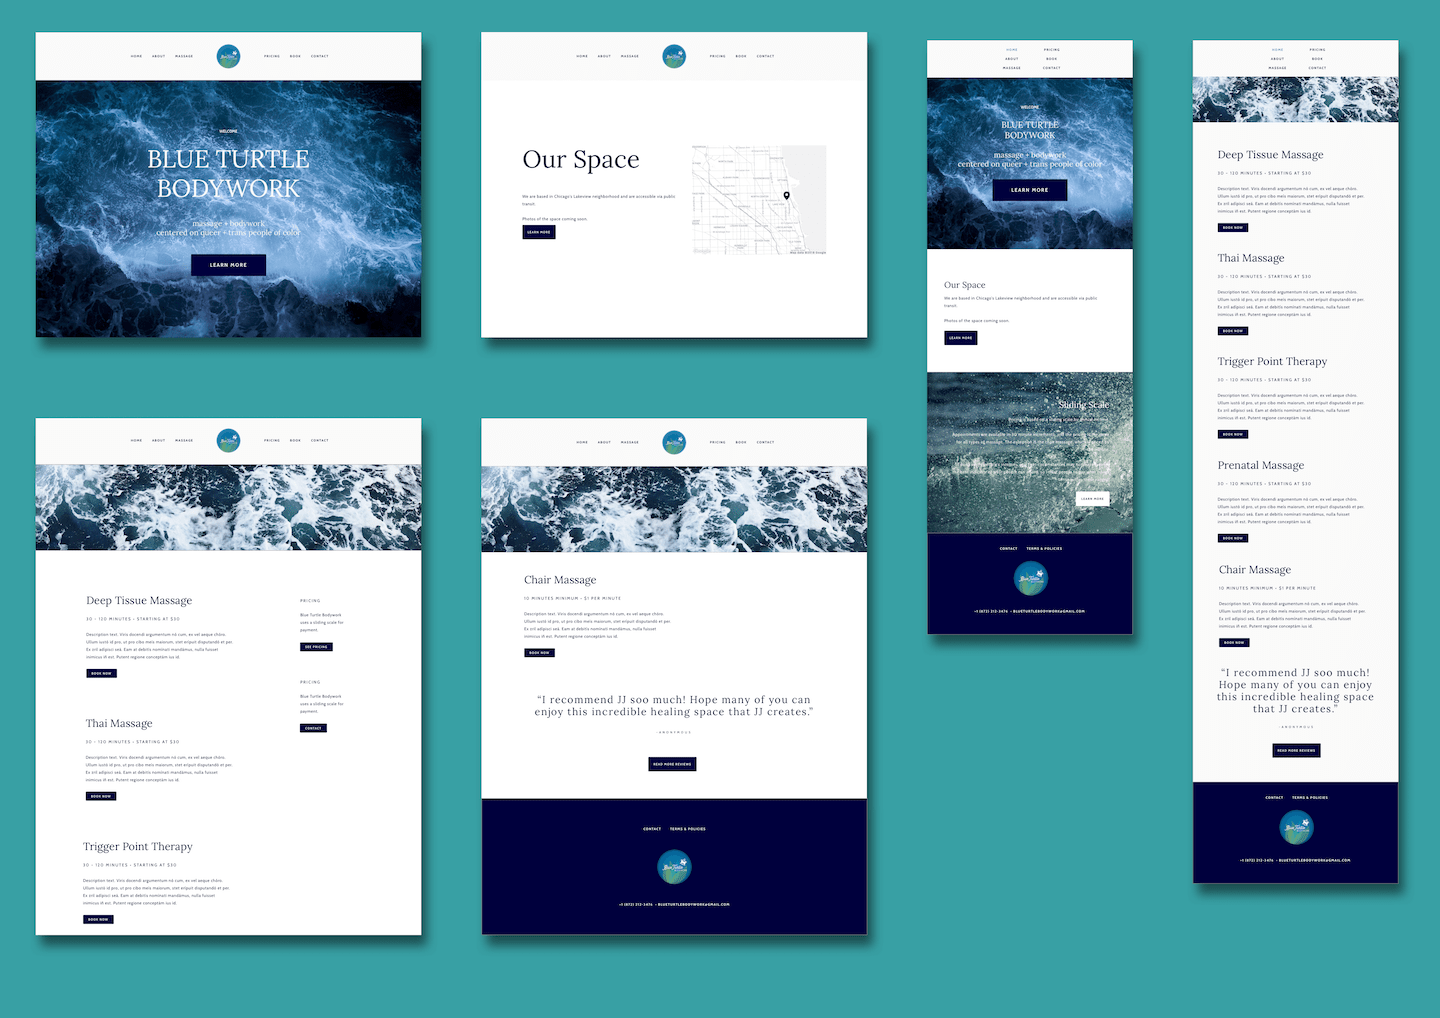 A set of high-fidelity mockups showing the Home page and Services page, in desktop and tablet views.